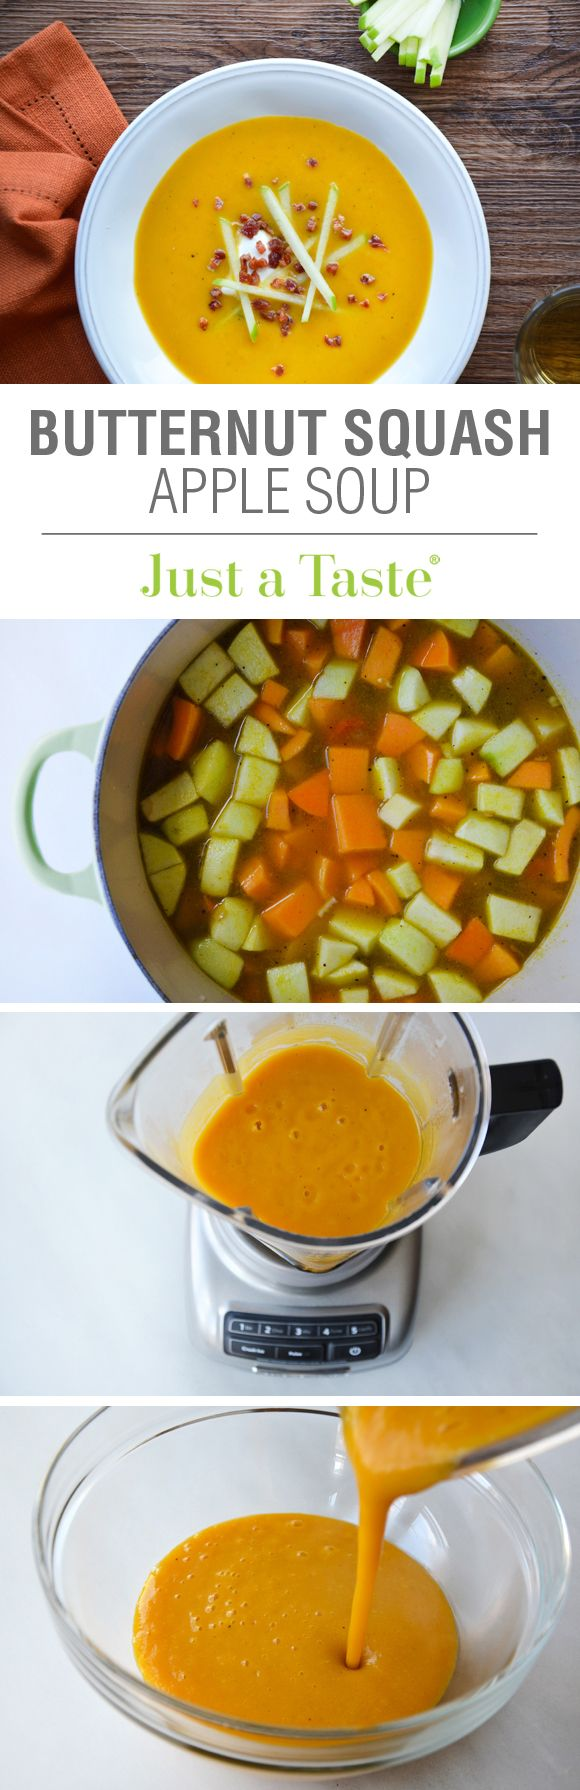 Butternut Squash Apple Soup recipe via justataste.com | A creamy, yet cream-less quick and easy soup!